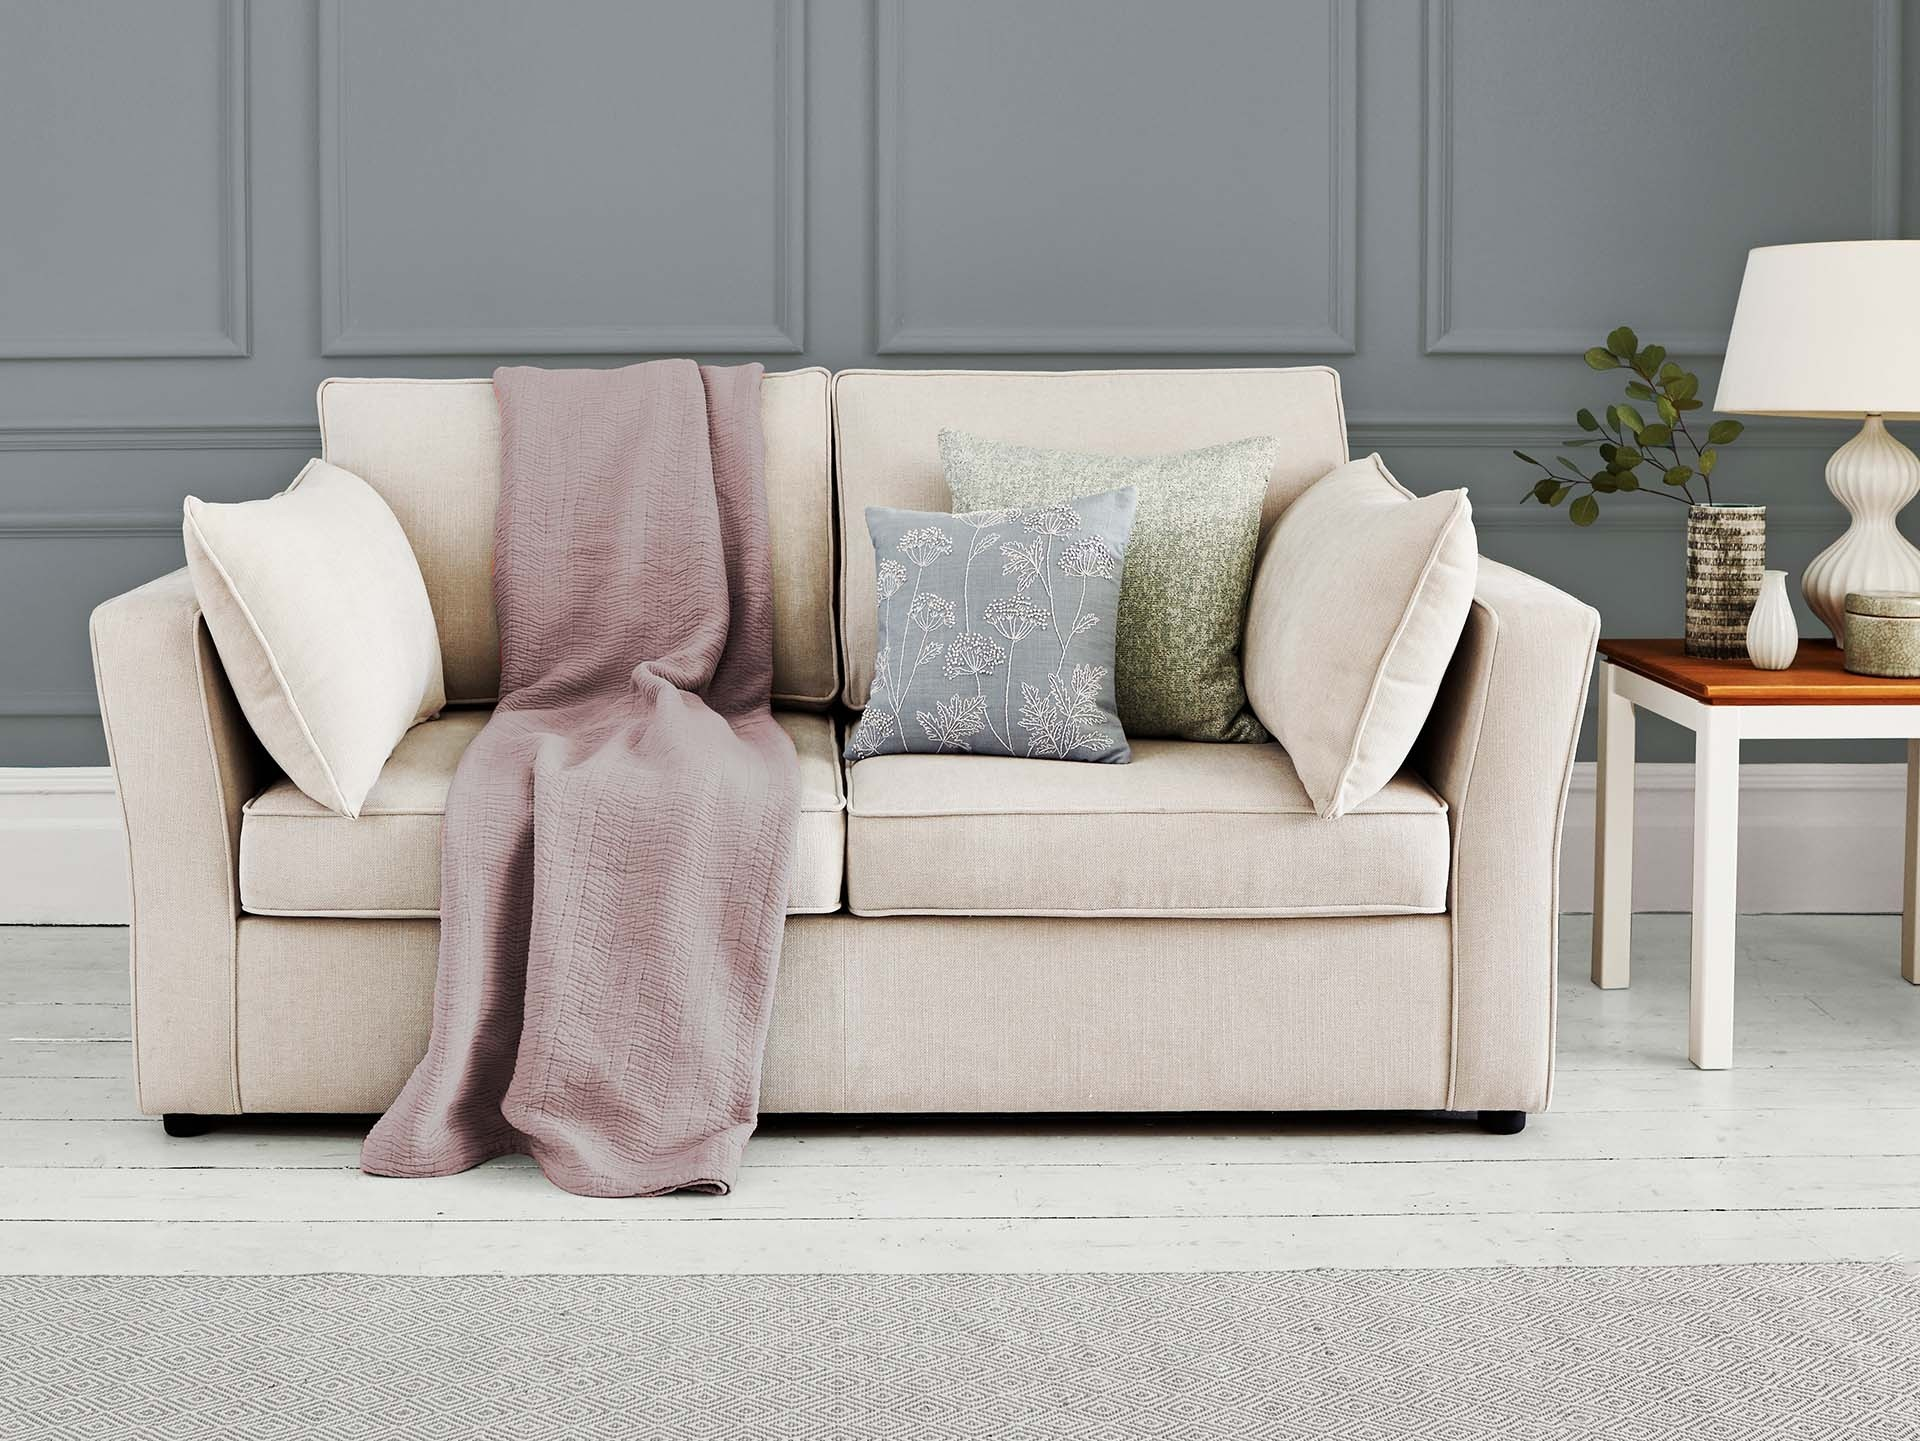 This is how I look in Stain Resistant Linen Cotton Stone with reflex foam seat cushions